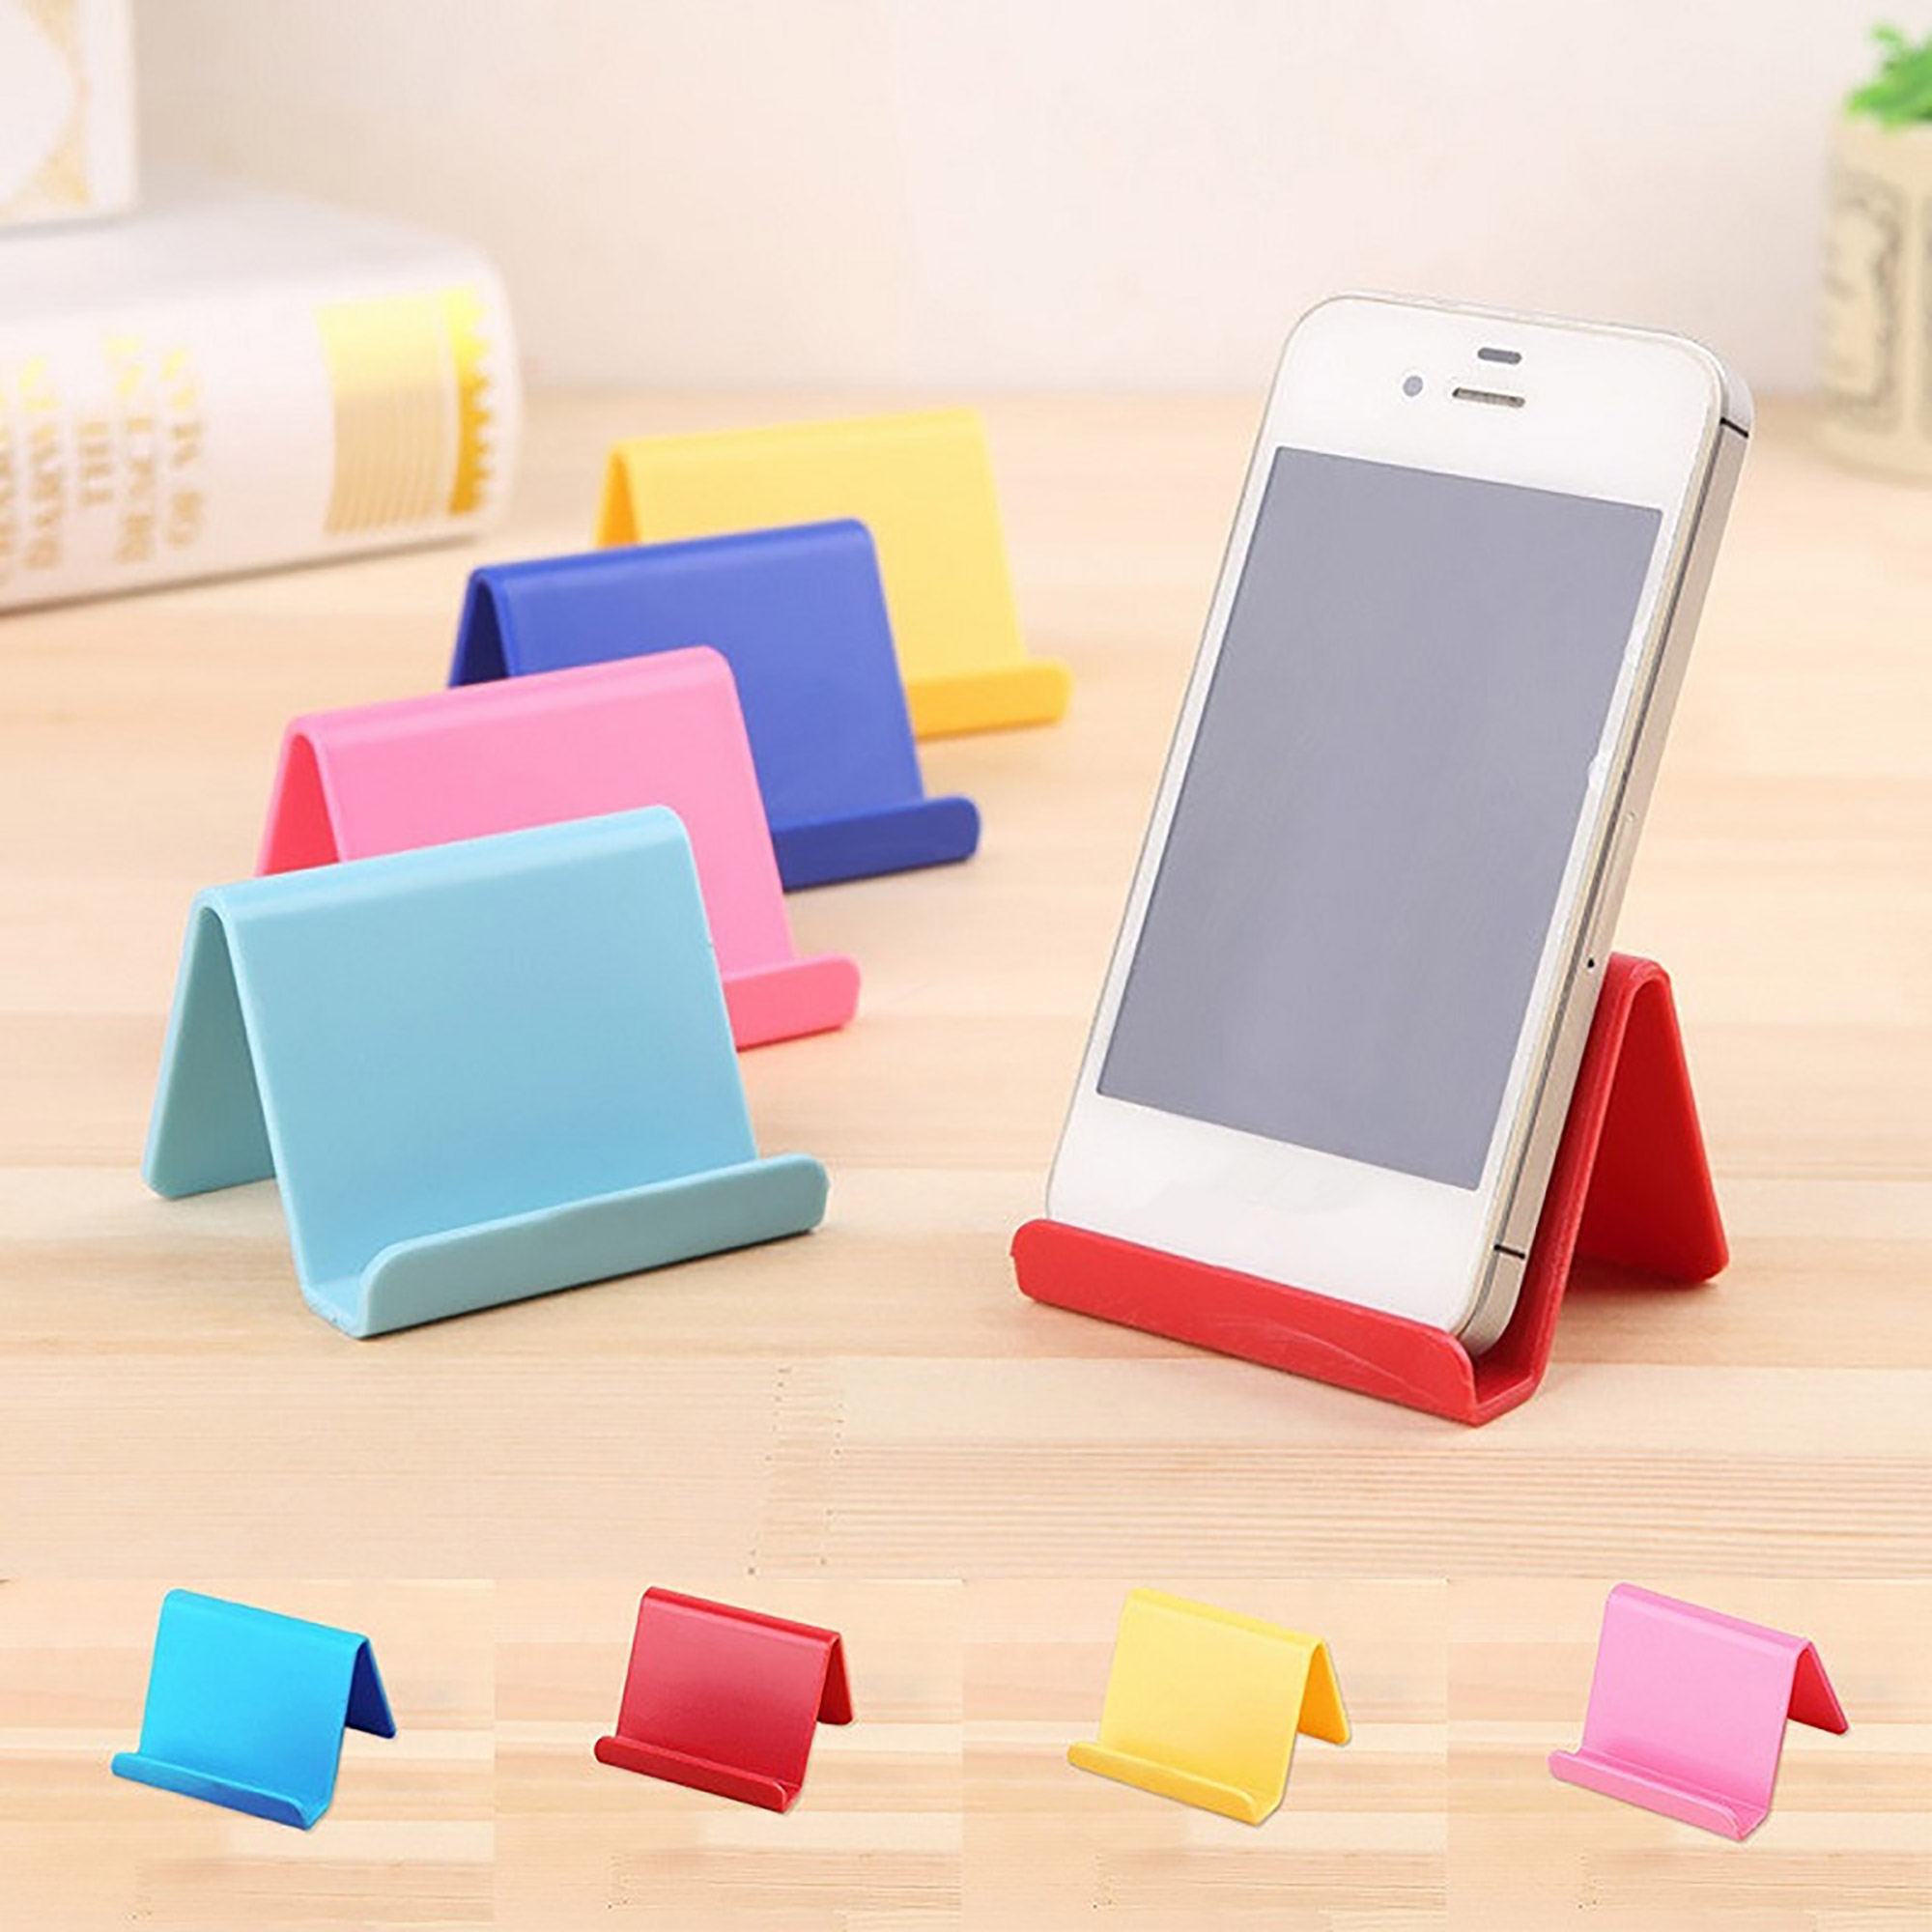 Small gift Desk phone stand Z style Universal desktop stand for iphone Tablet Stand useful desk organizer for watching movies